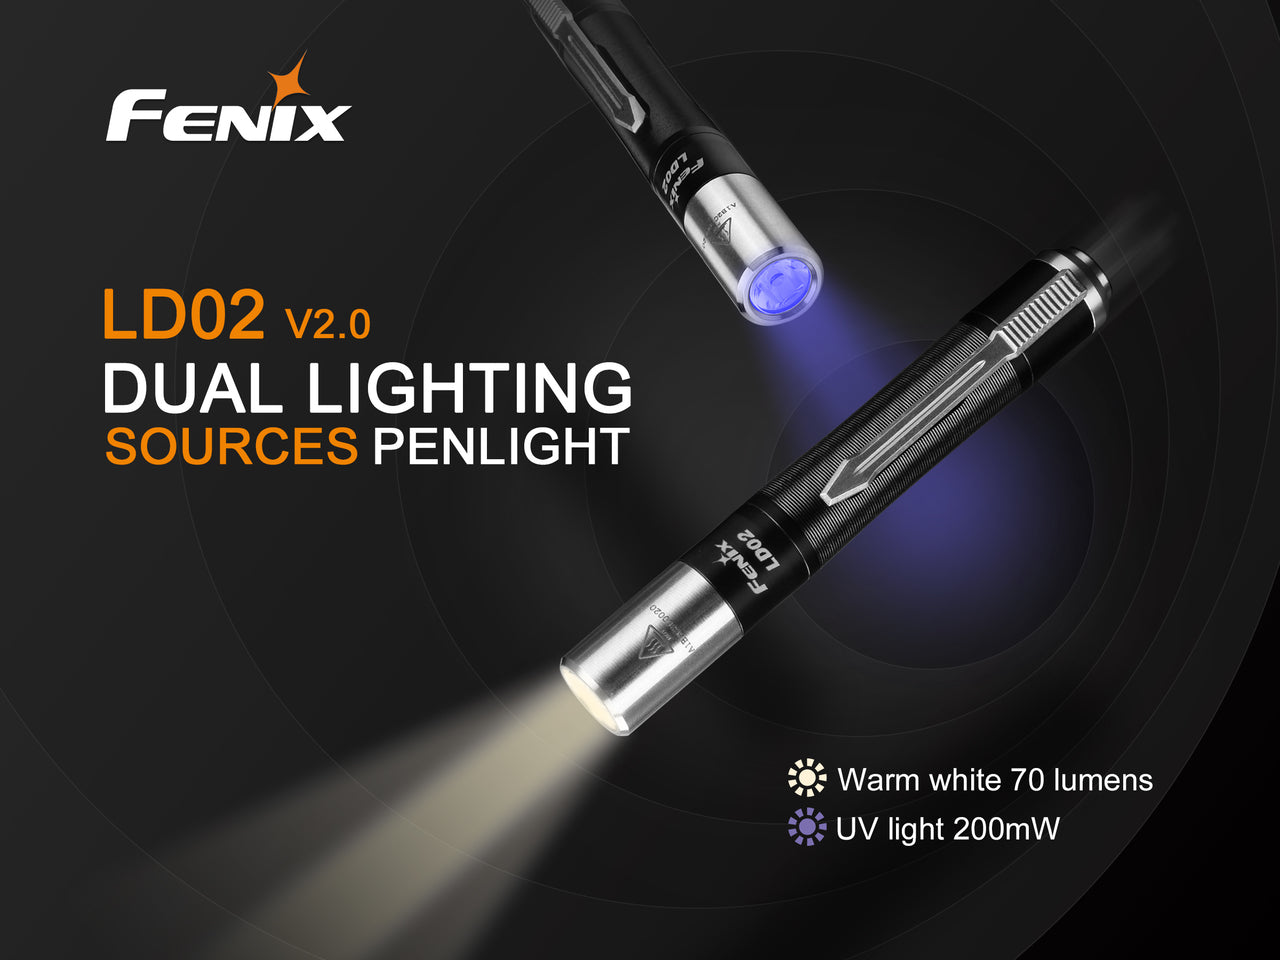 Fenix LD02 V2.0 LED Pen Light in India, 70 Lumens Pen Size Torch in India, Lights for Doctors, Dentist, Warm Light with UV Light, Compact Pocket Size Torch